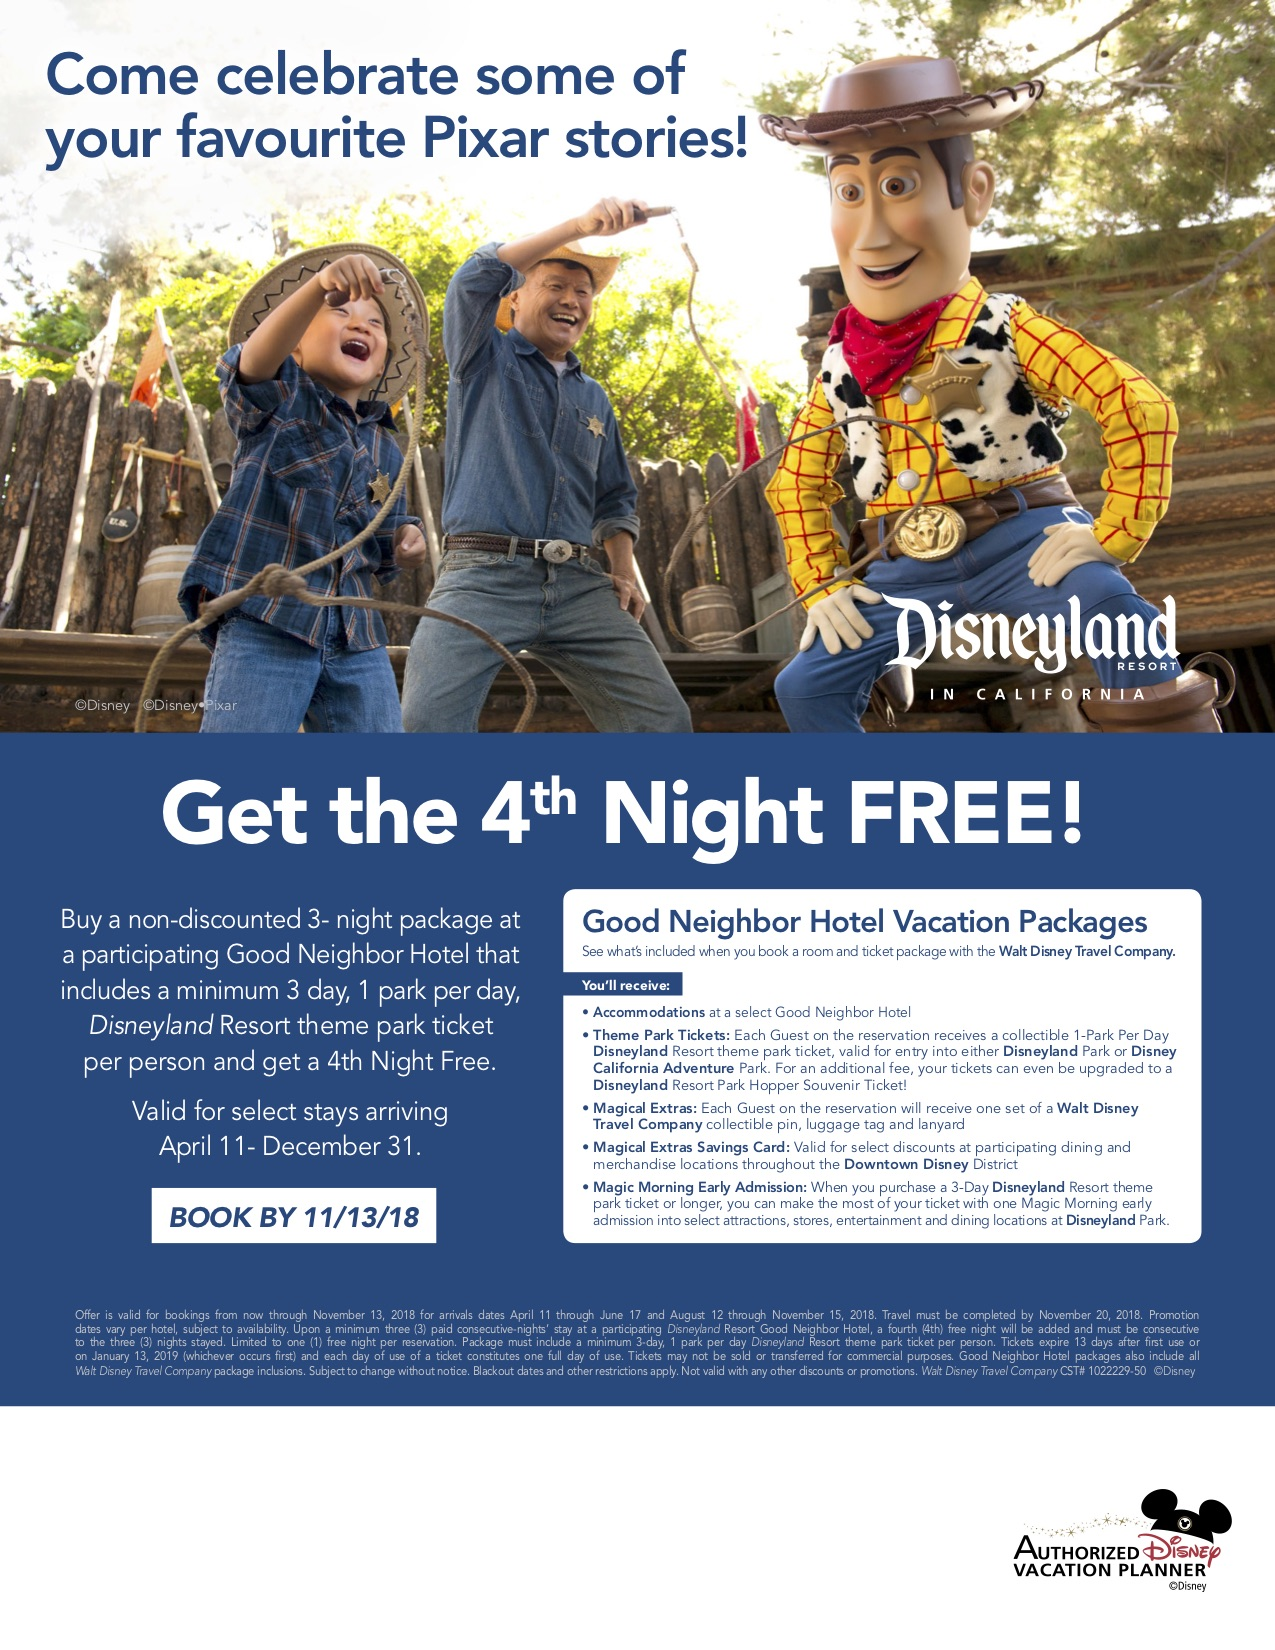 GET THE FOURTH NIGHT FREE!